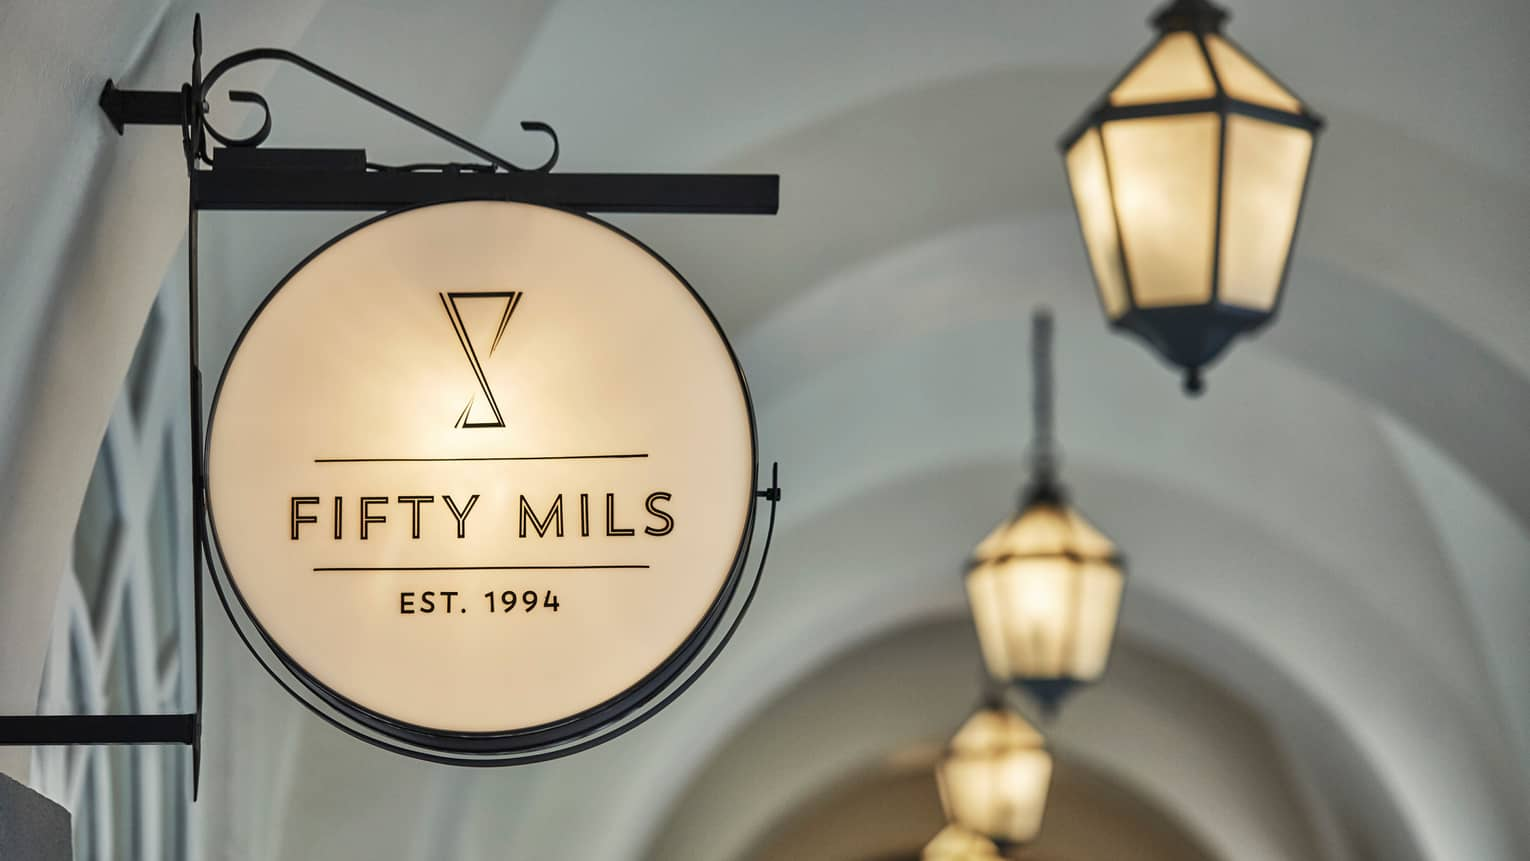 Close-up of round sign with lounge sign reading Fifty Mils Established 1994, lanterns